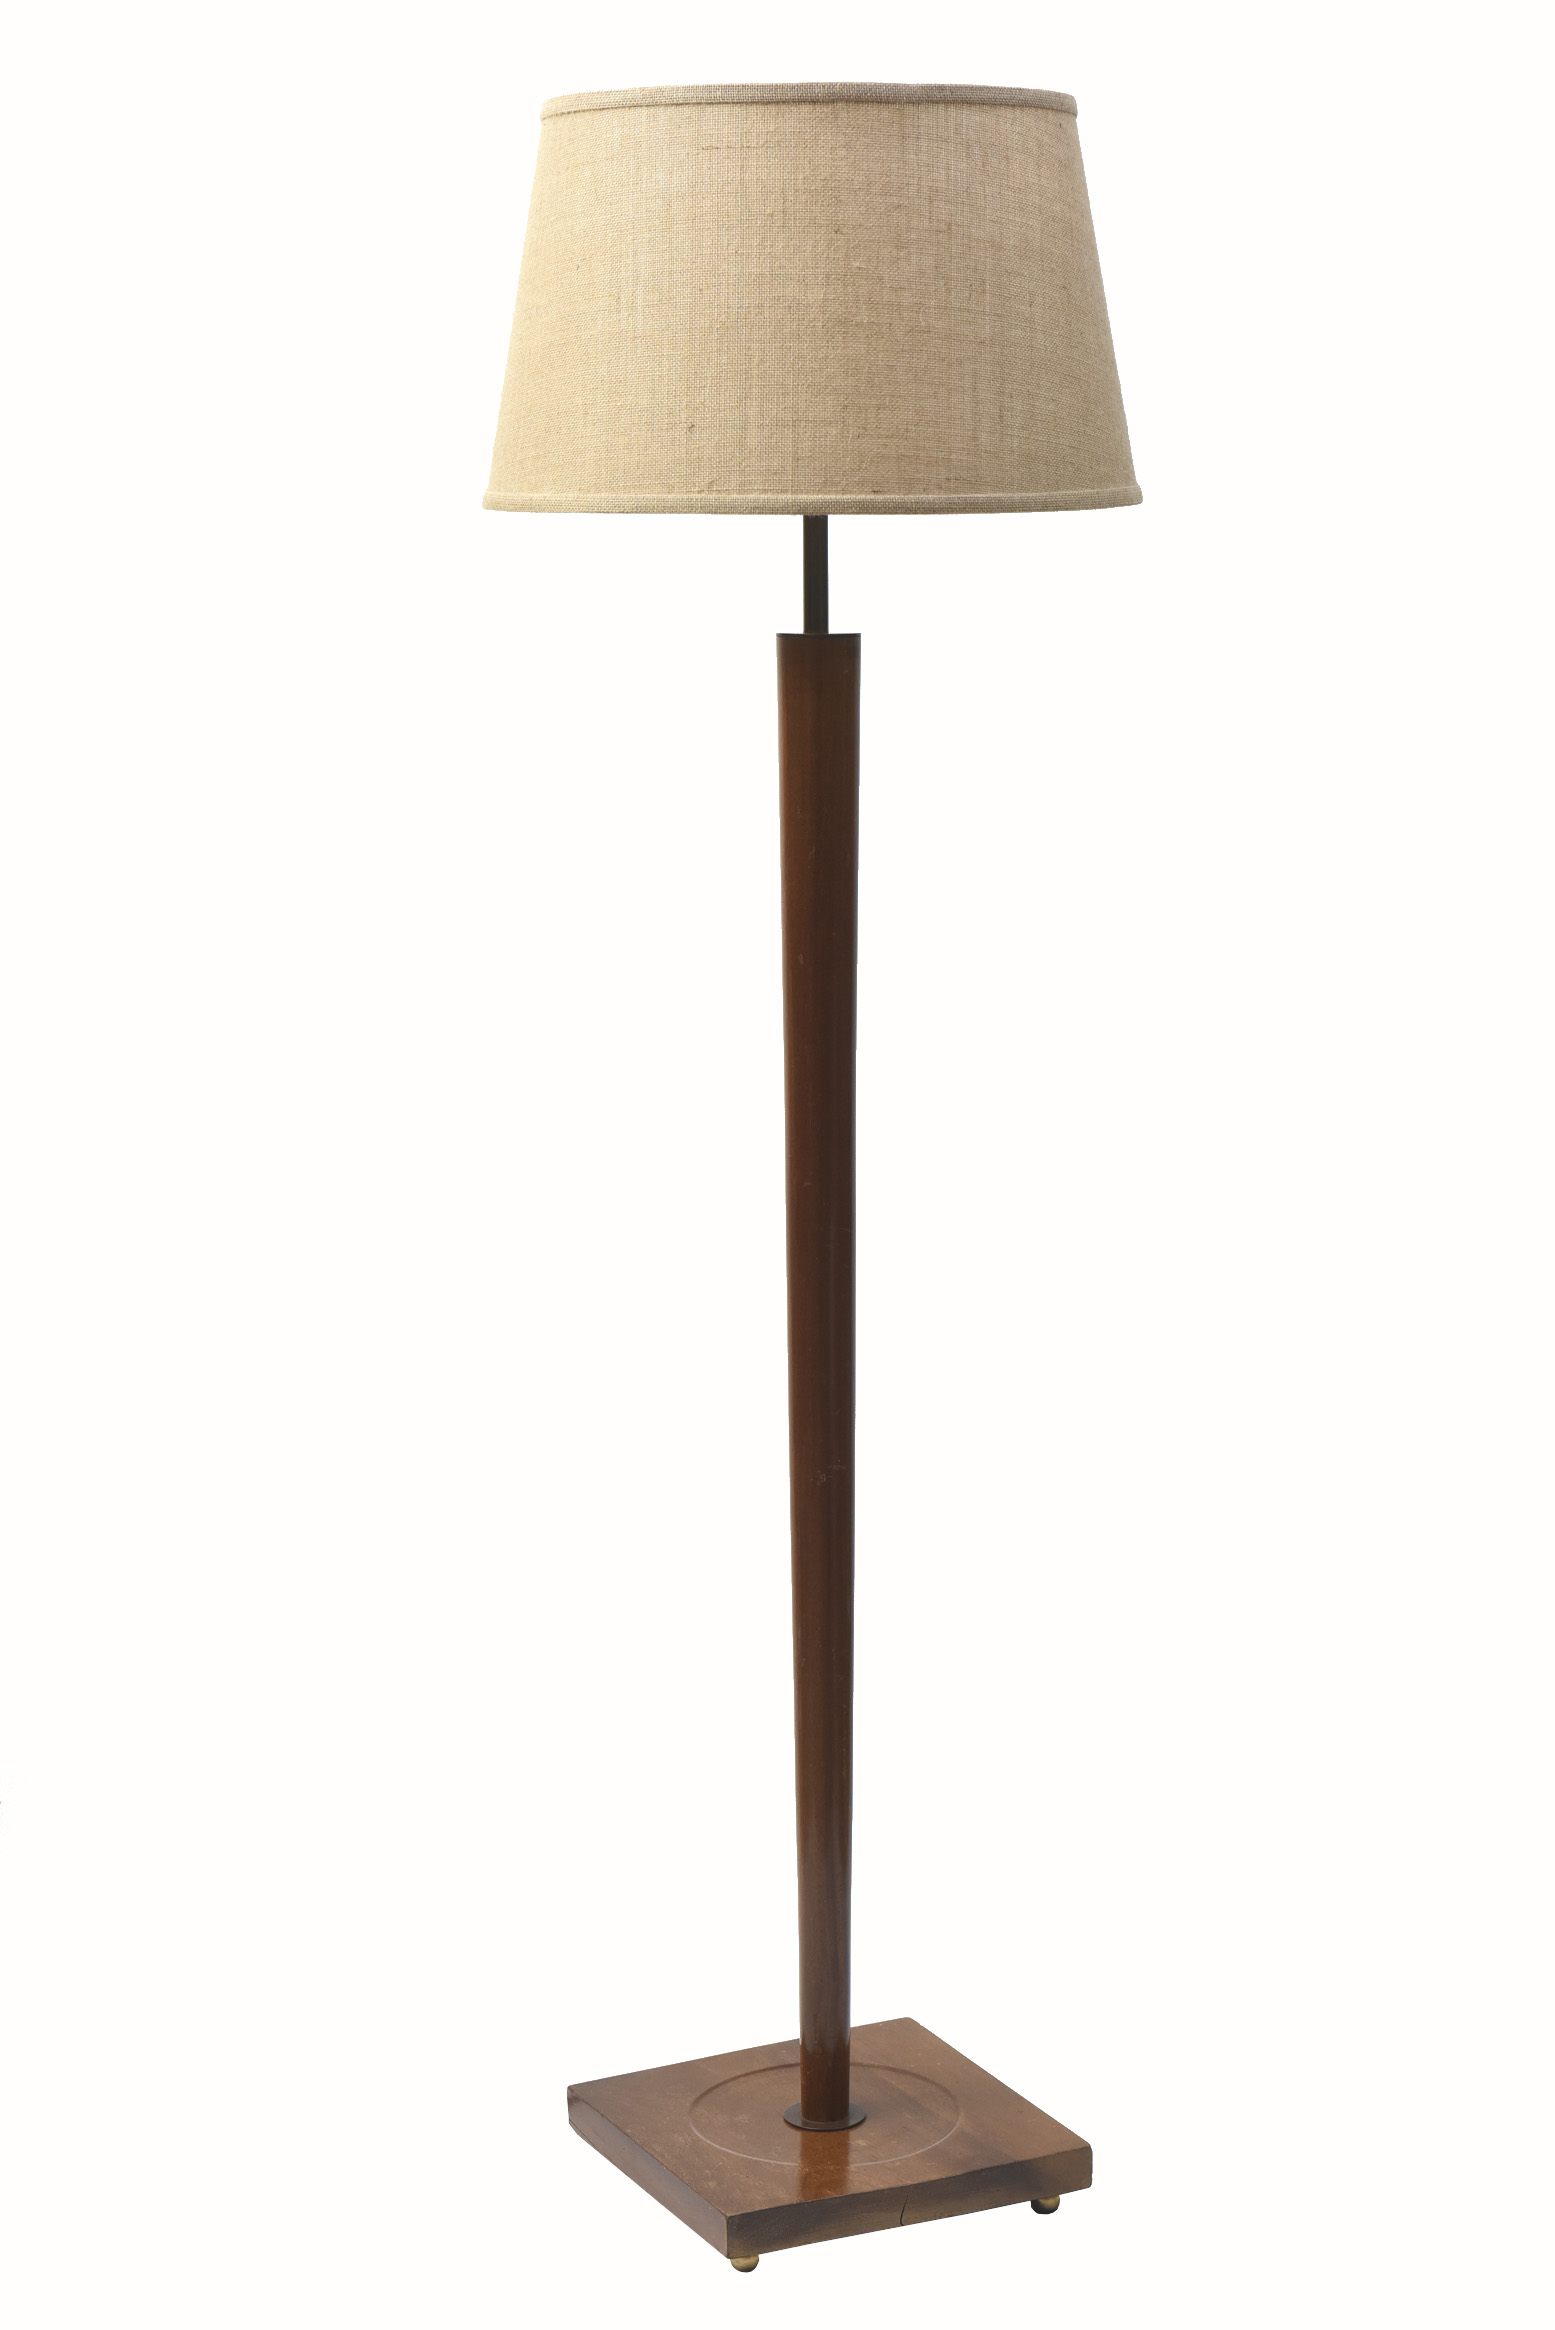 Mid Century Wooden Floor Lamp